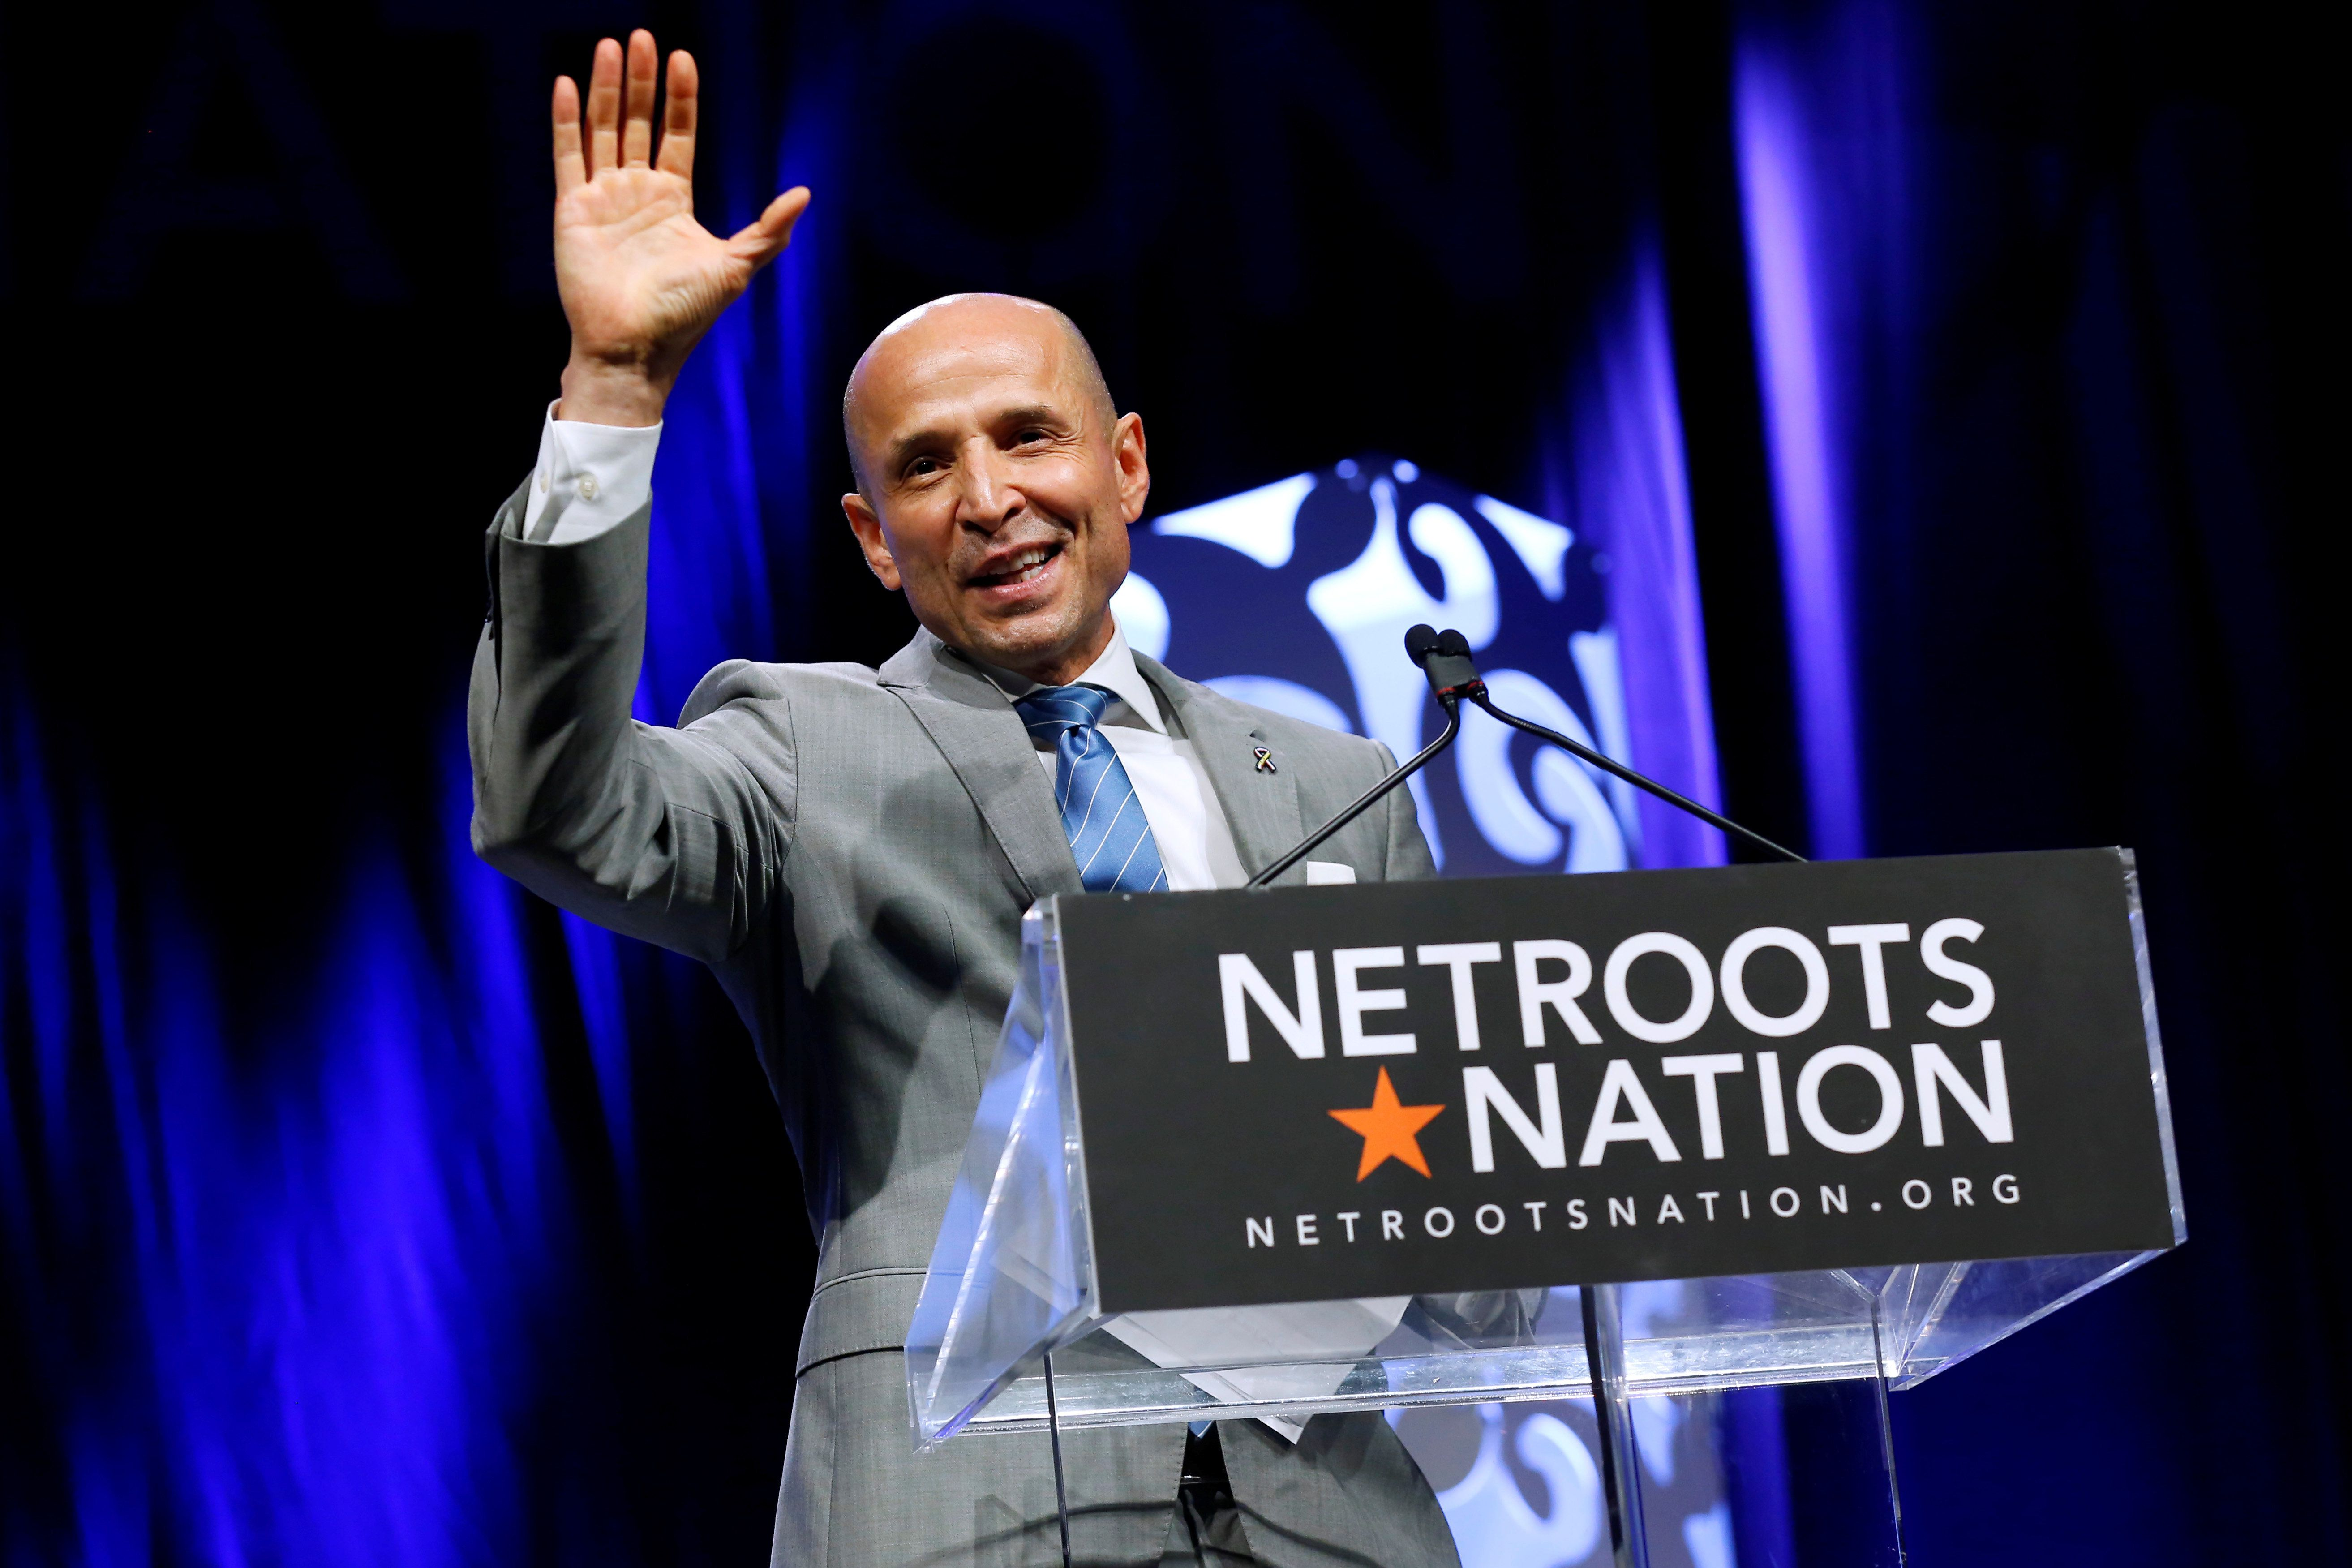 David Garcia, gubernatorial candidate for Arizona, speaks at the Netroots Nation annual conference for political progressives in New Orleans, Louisiana, U.S. August 4, 2018. REUTERS/Jonathan Bachman